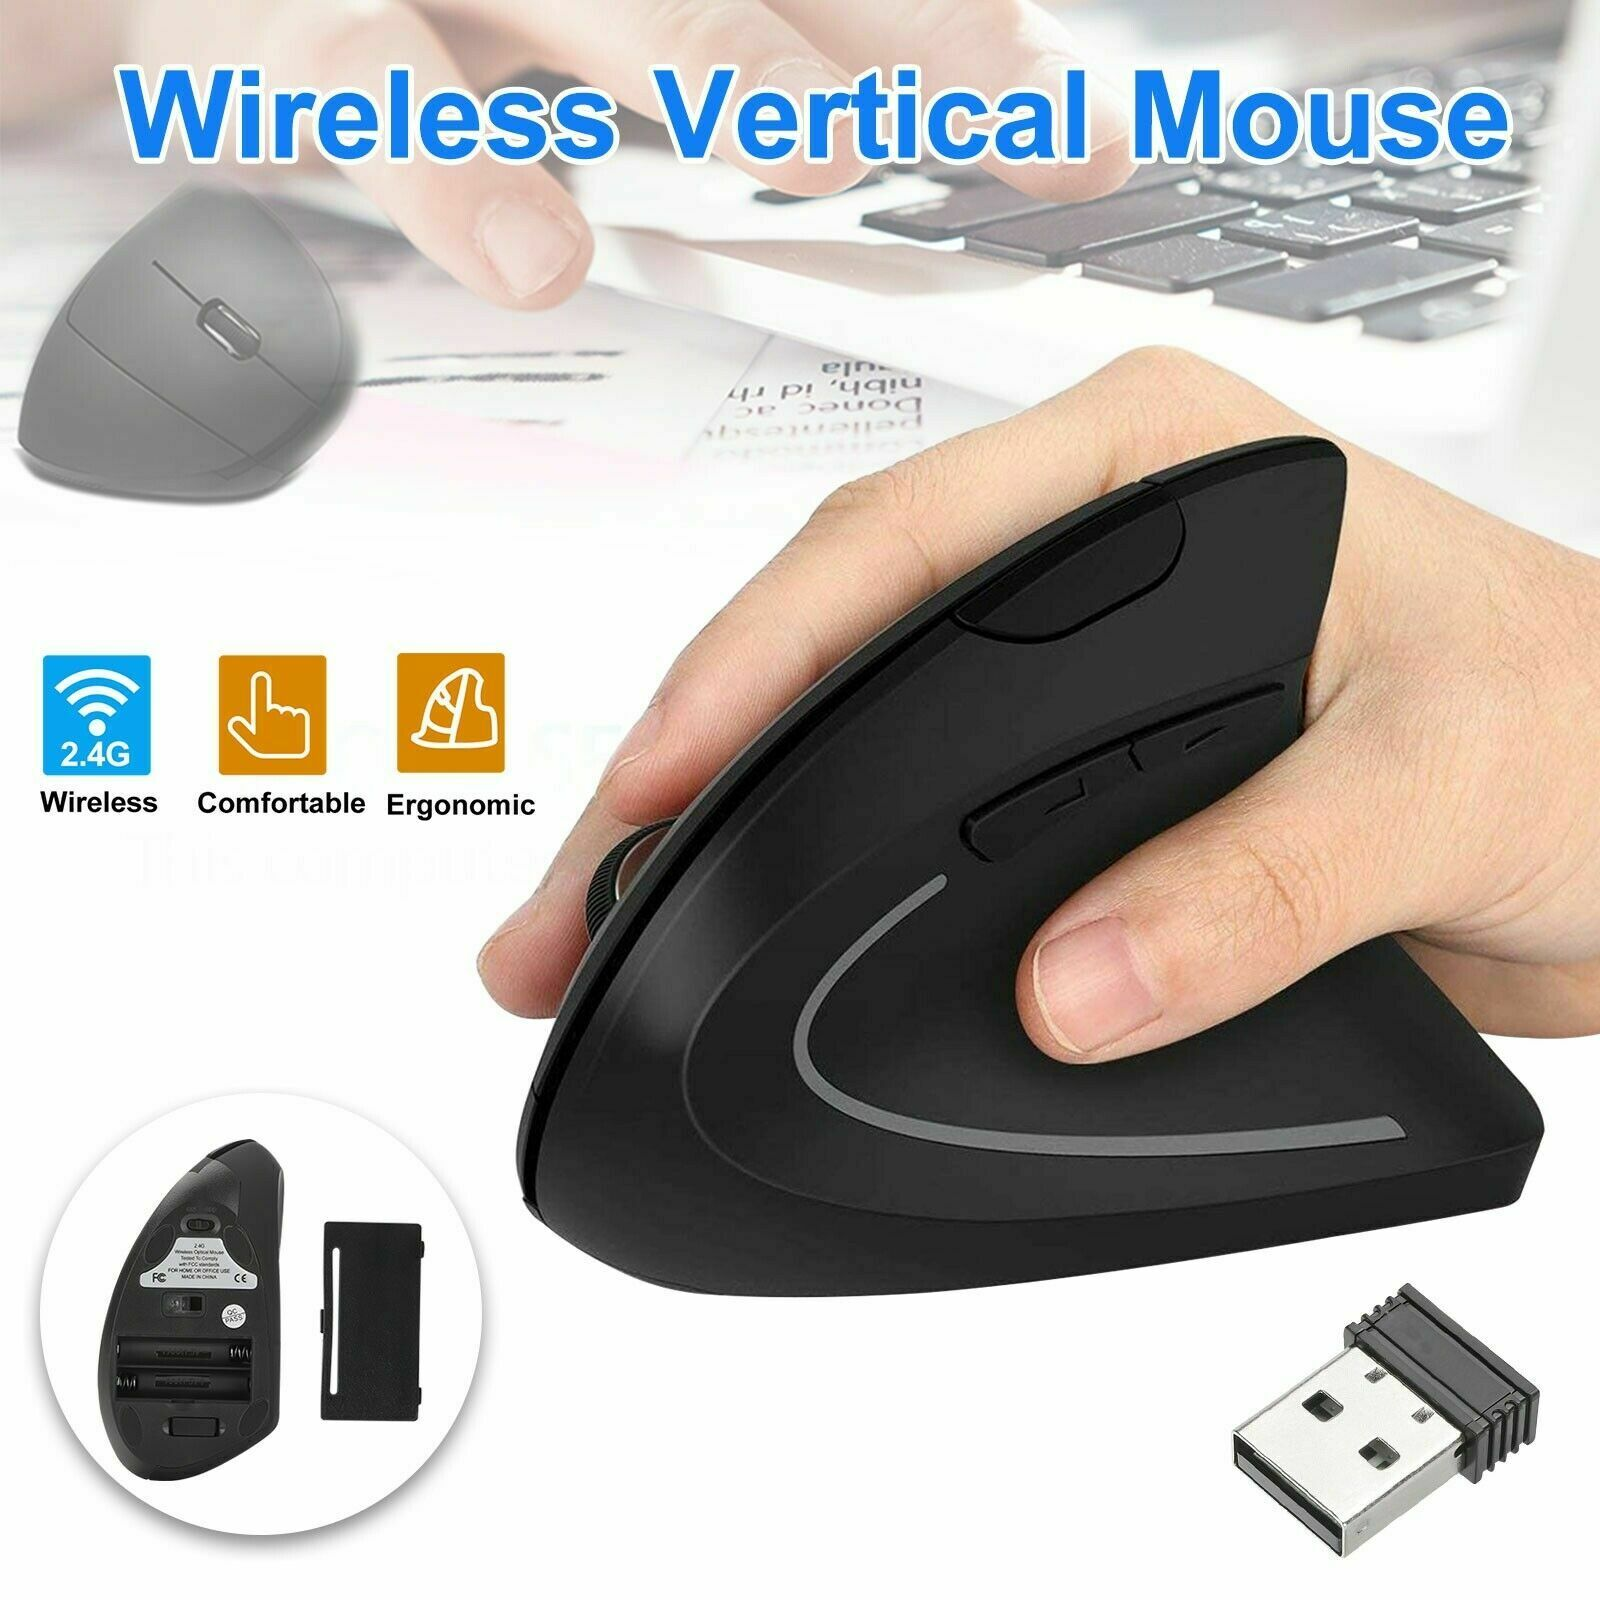 Ergonomic Mouse Optical Vertical Mice 6 Keys USB Wireless 2.4GHz 1200DPI For PC Computers/Tablets & Networking